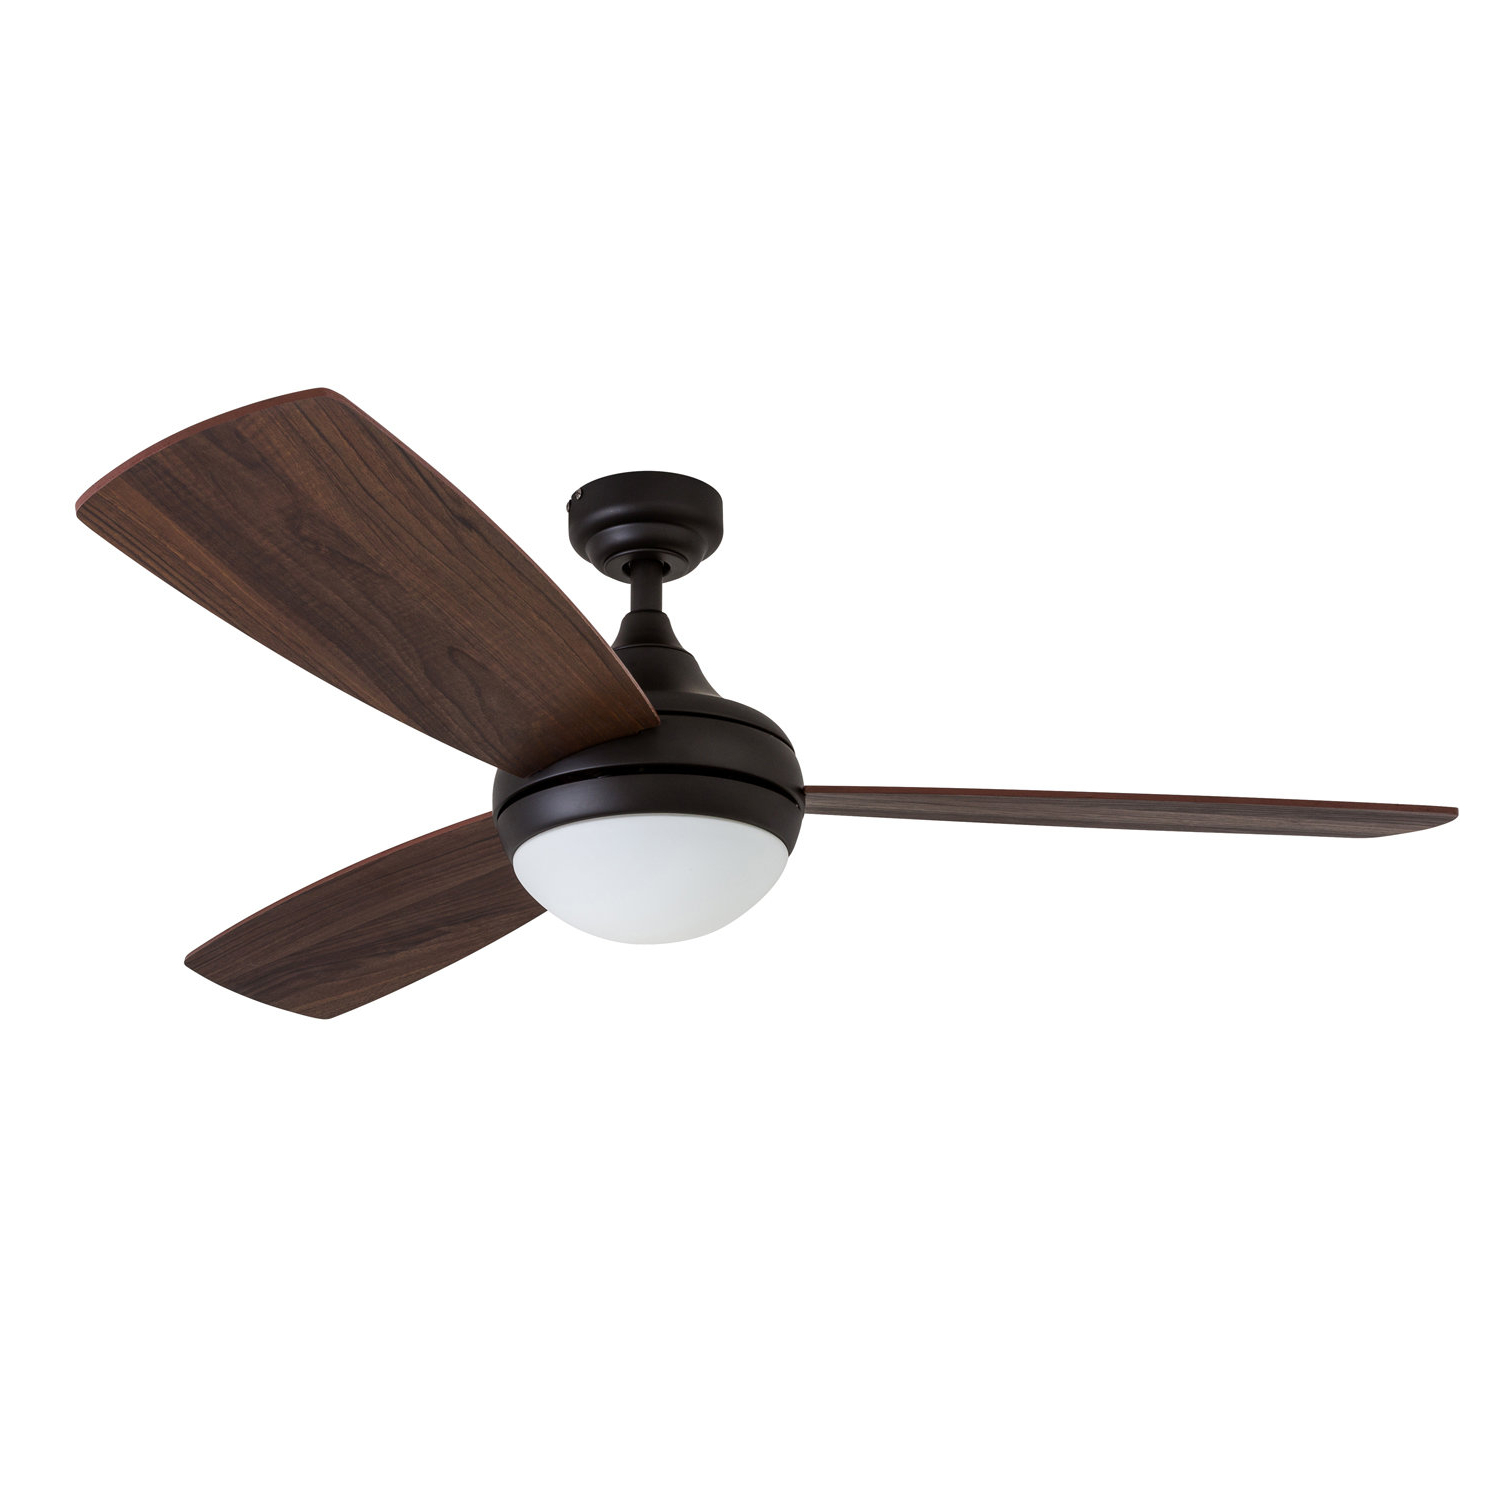 "Sentinel 3 Blade Led Ceiling Fans With Remote Within Most Popular 52"" Alyce 3 Blade Led Ceiling Fan With Remote Control (View 8 of 20)"